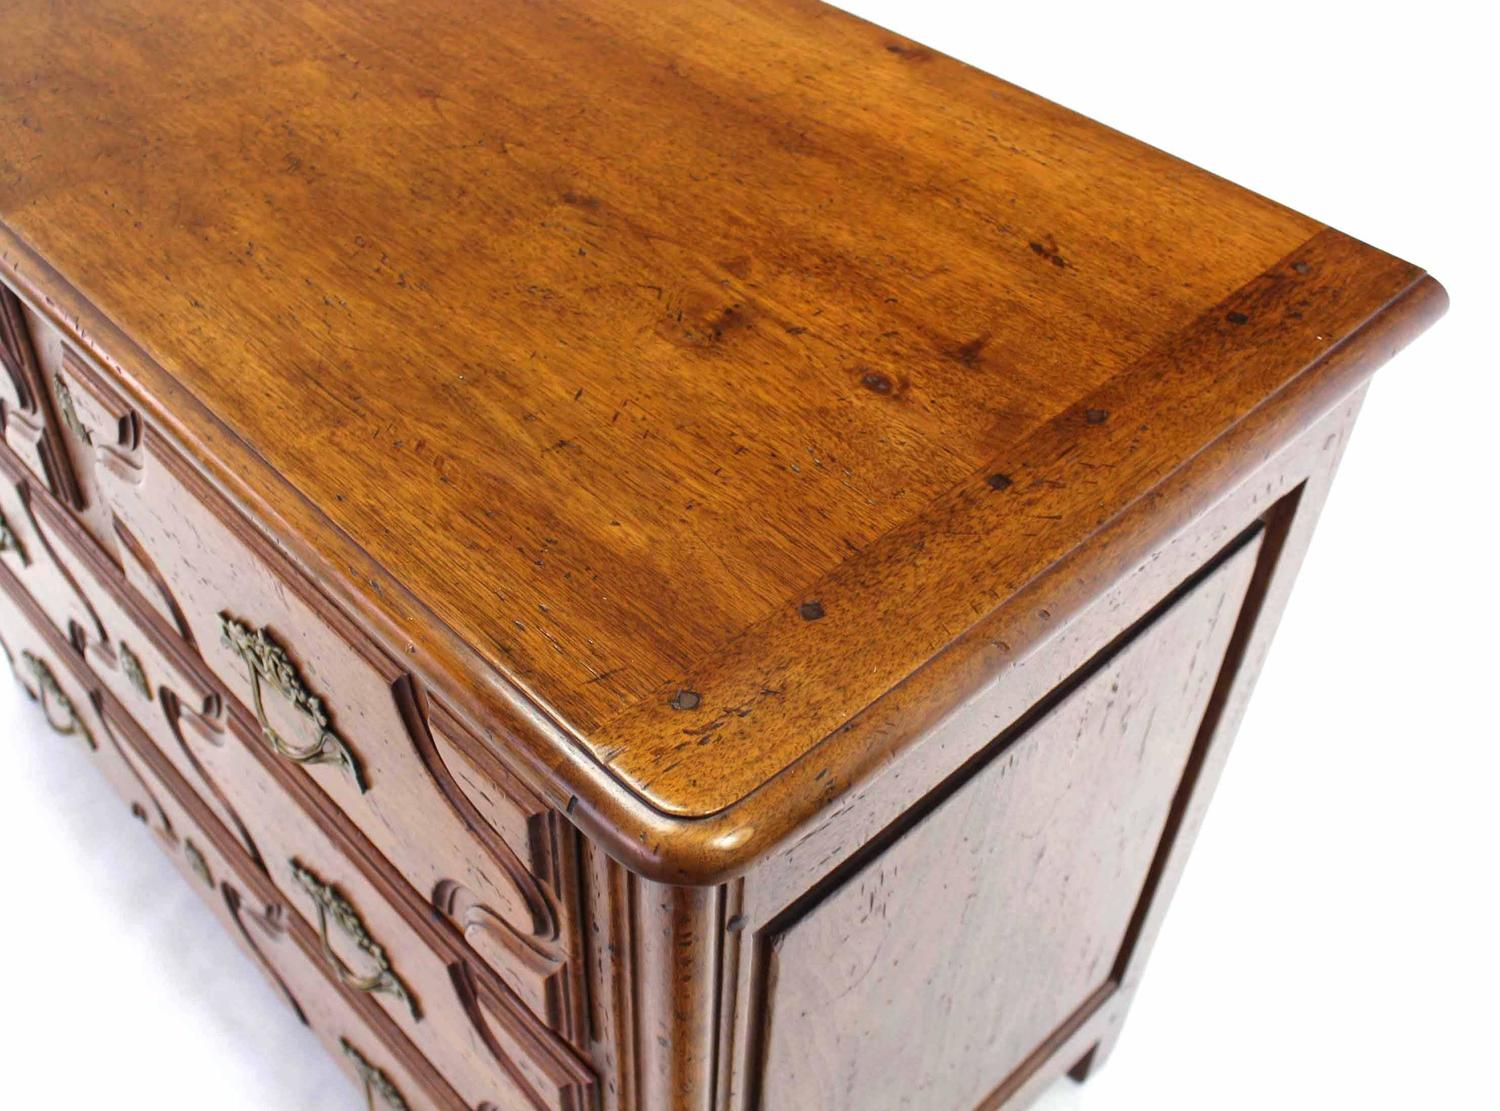 #AD5410 Solid Wood Gothic Three Drawer Chest Of Drawers For Sale At 1stdibs with 1500x1111 px of Best Chest Of Drawers Solid Wood 11111500 image @ avoidforclosure.info